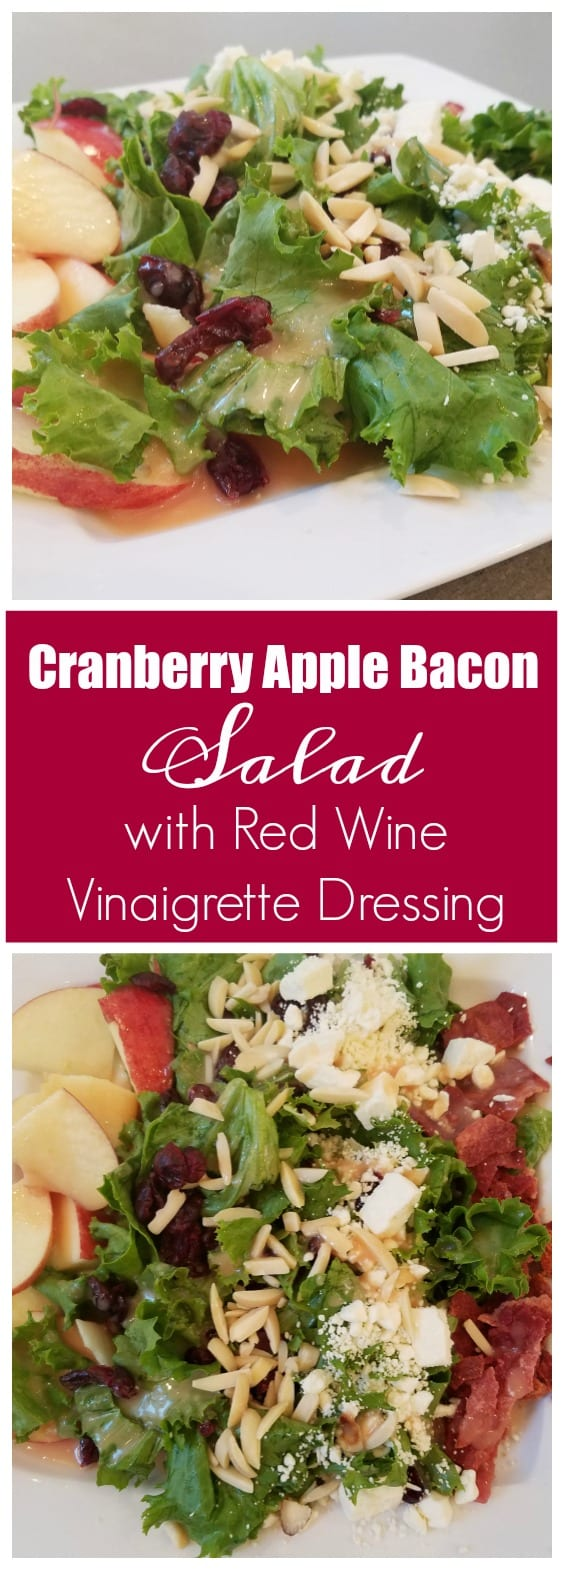 cranberry-apple-bacon-salad